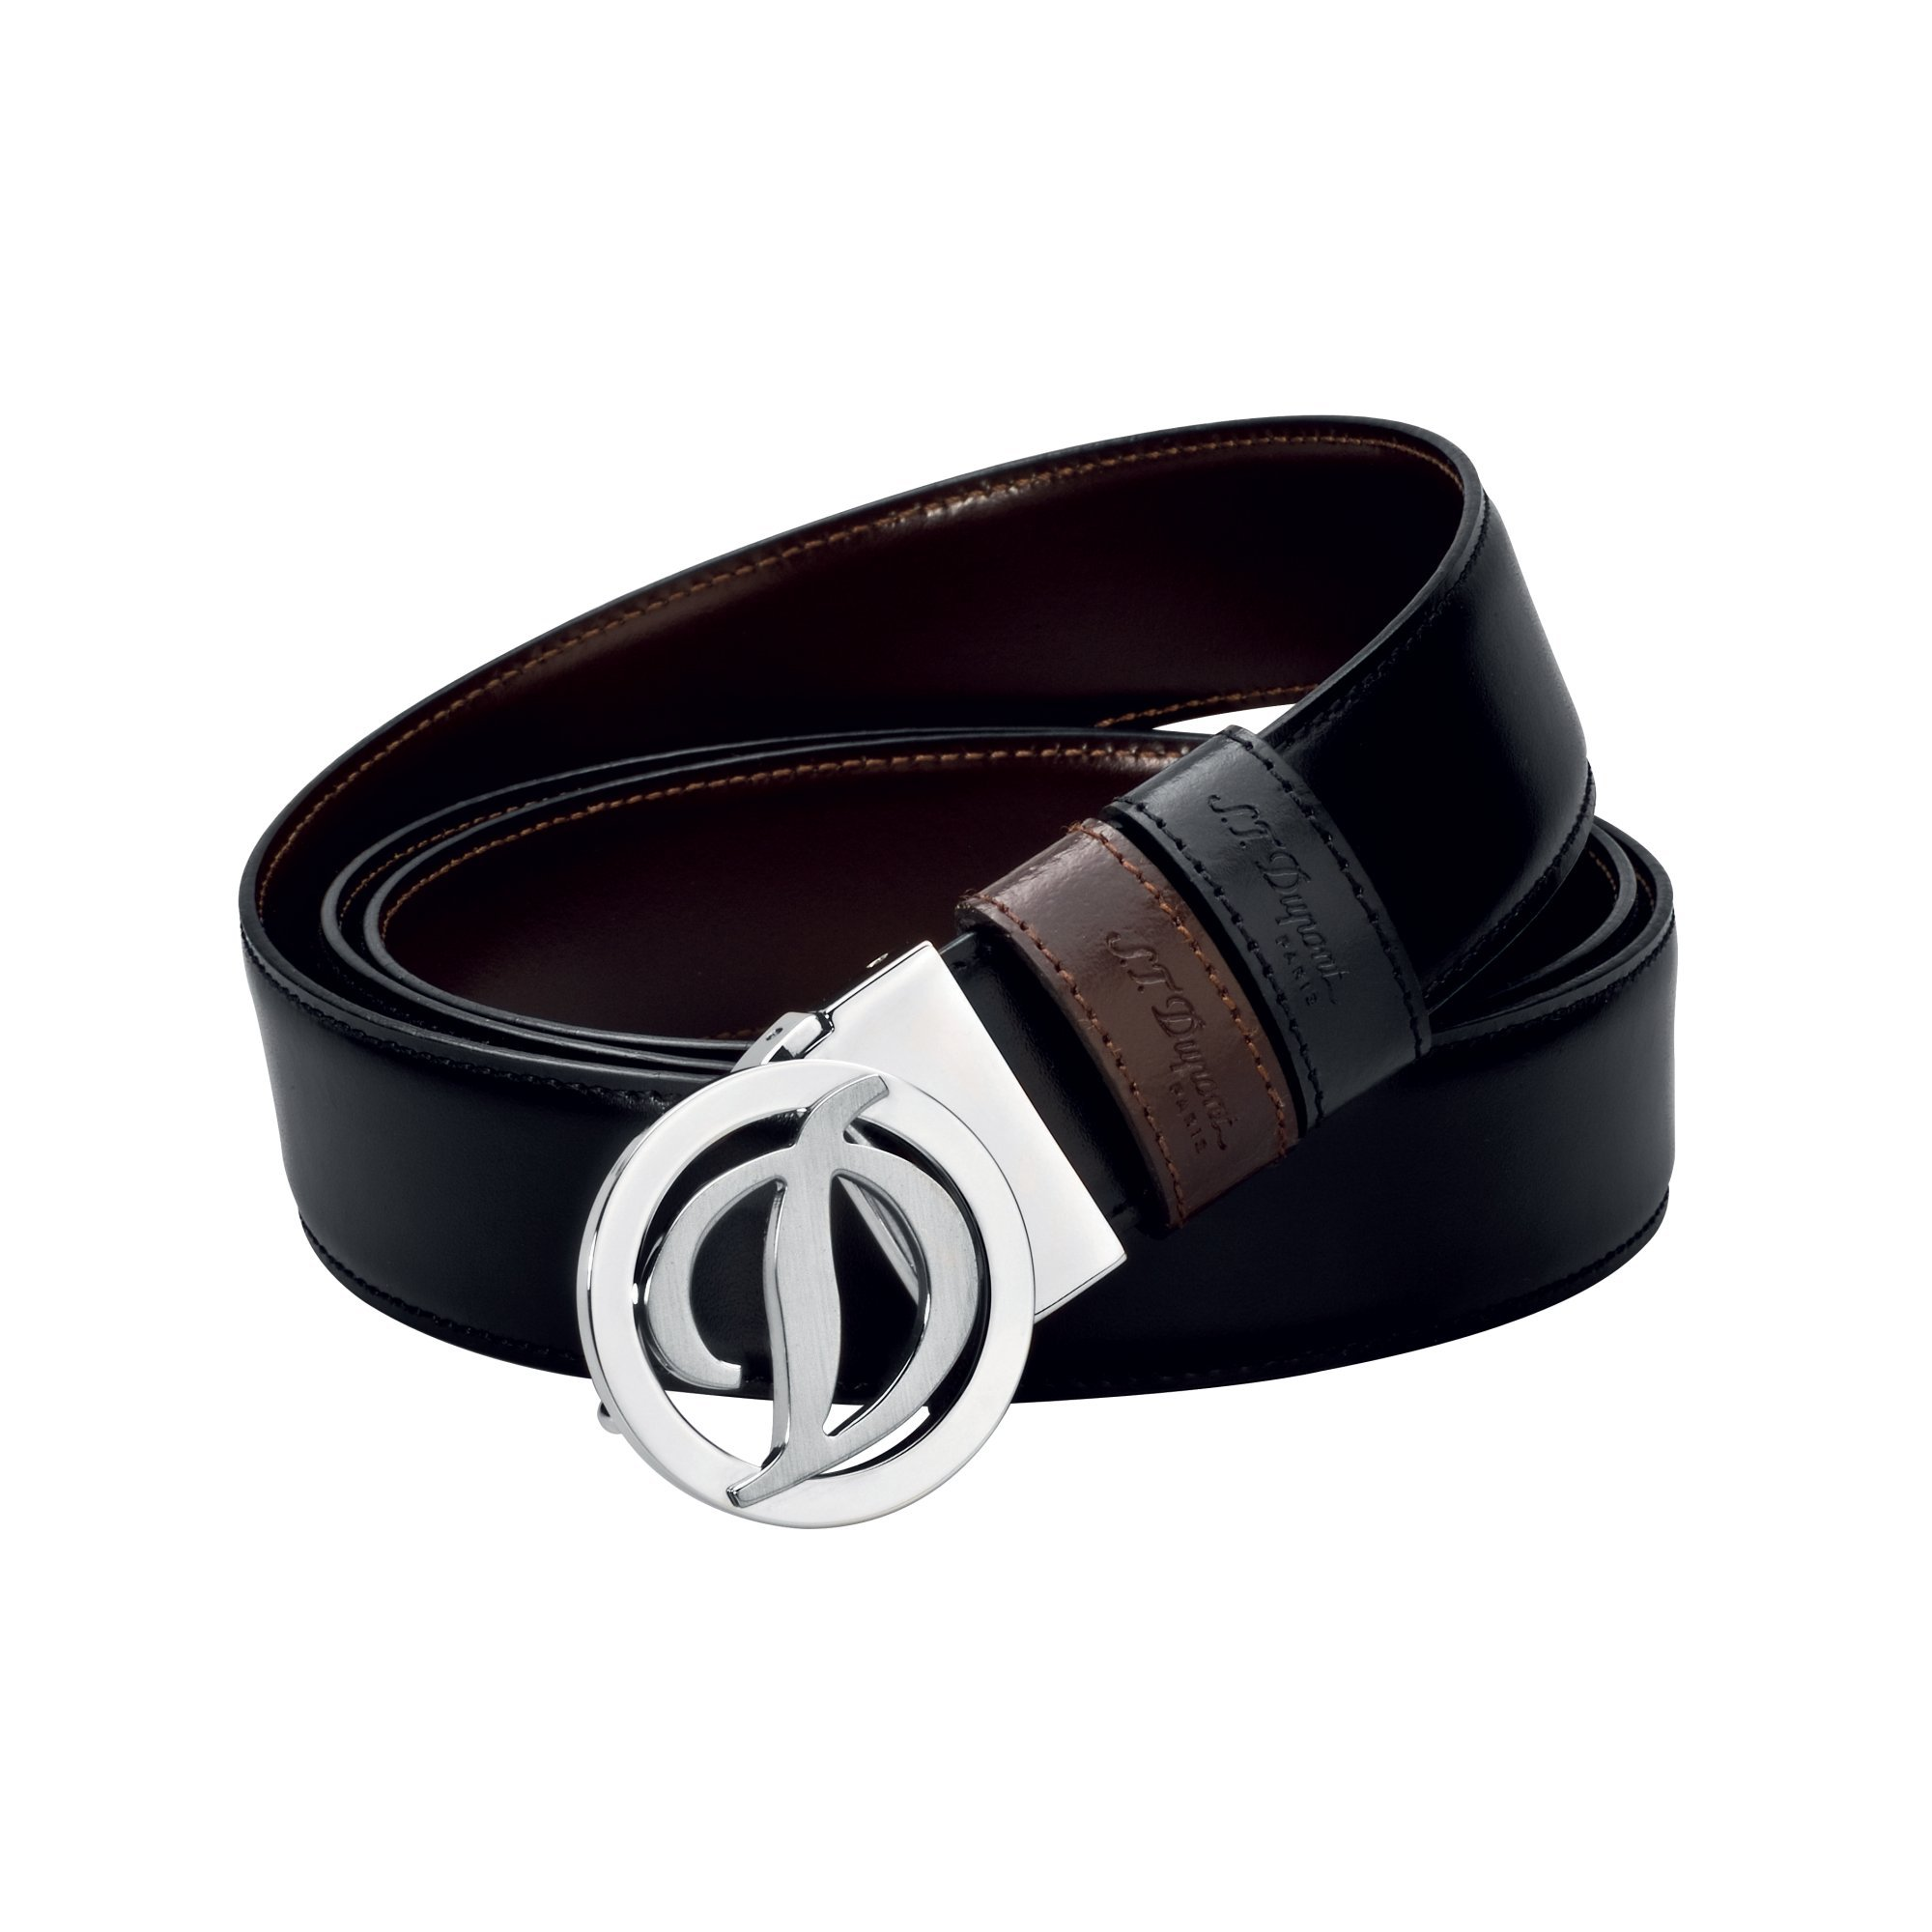 S.T. Dupont 7320120 Business Reversible Black/Brown Belt